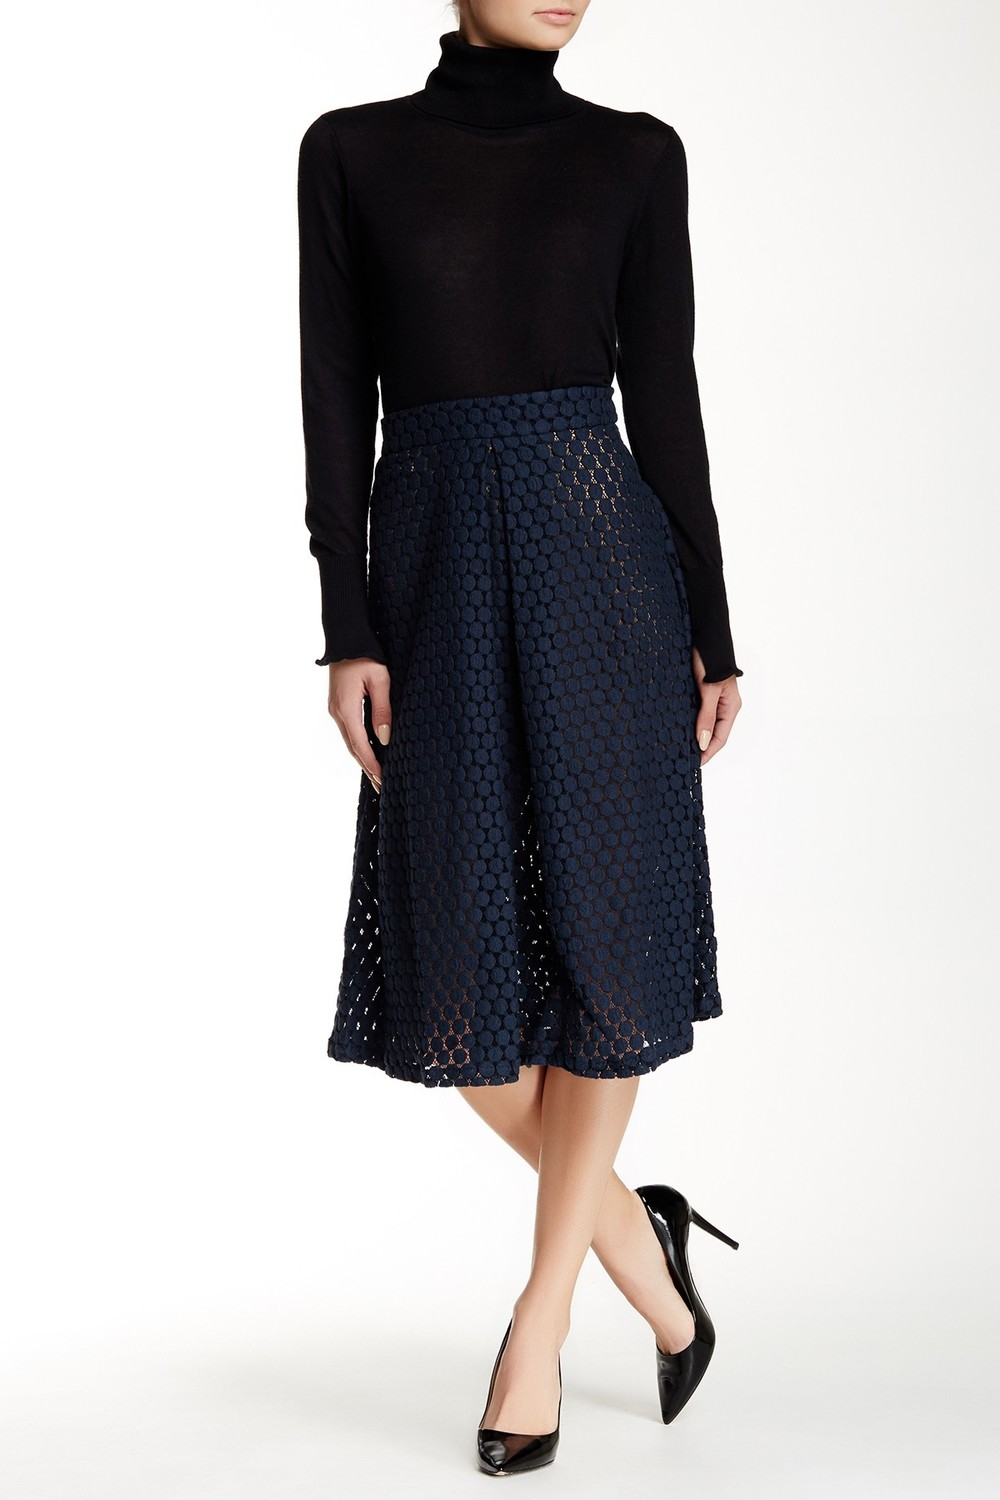 David Lerner Lace Midi Skirt. Available in ink, white. Nordstrom Rack. Was: $284 Now: $129.